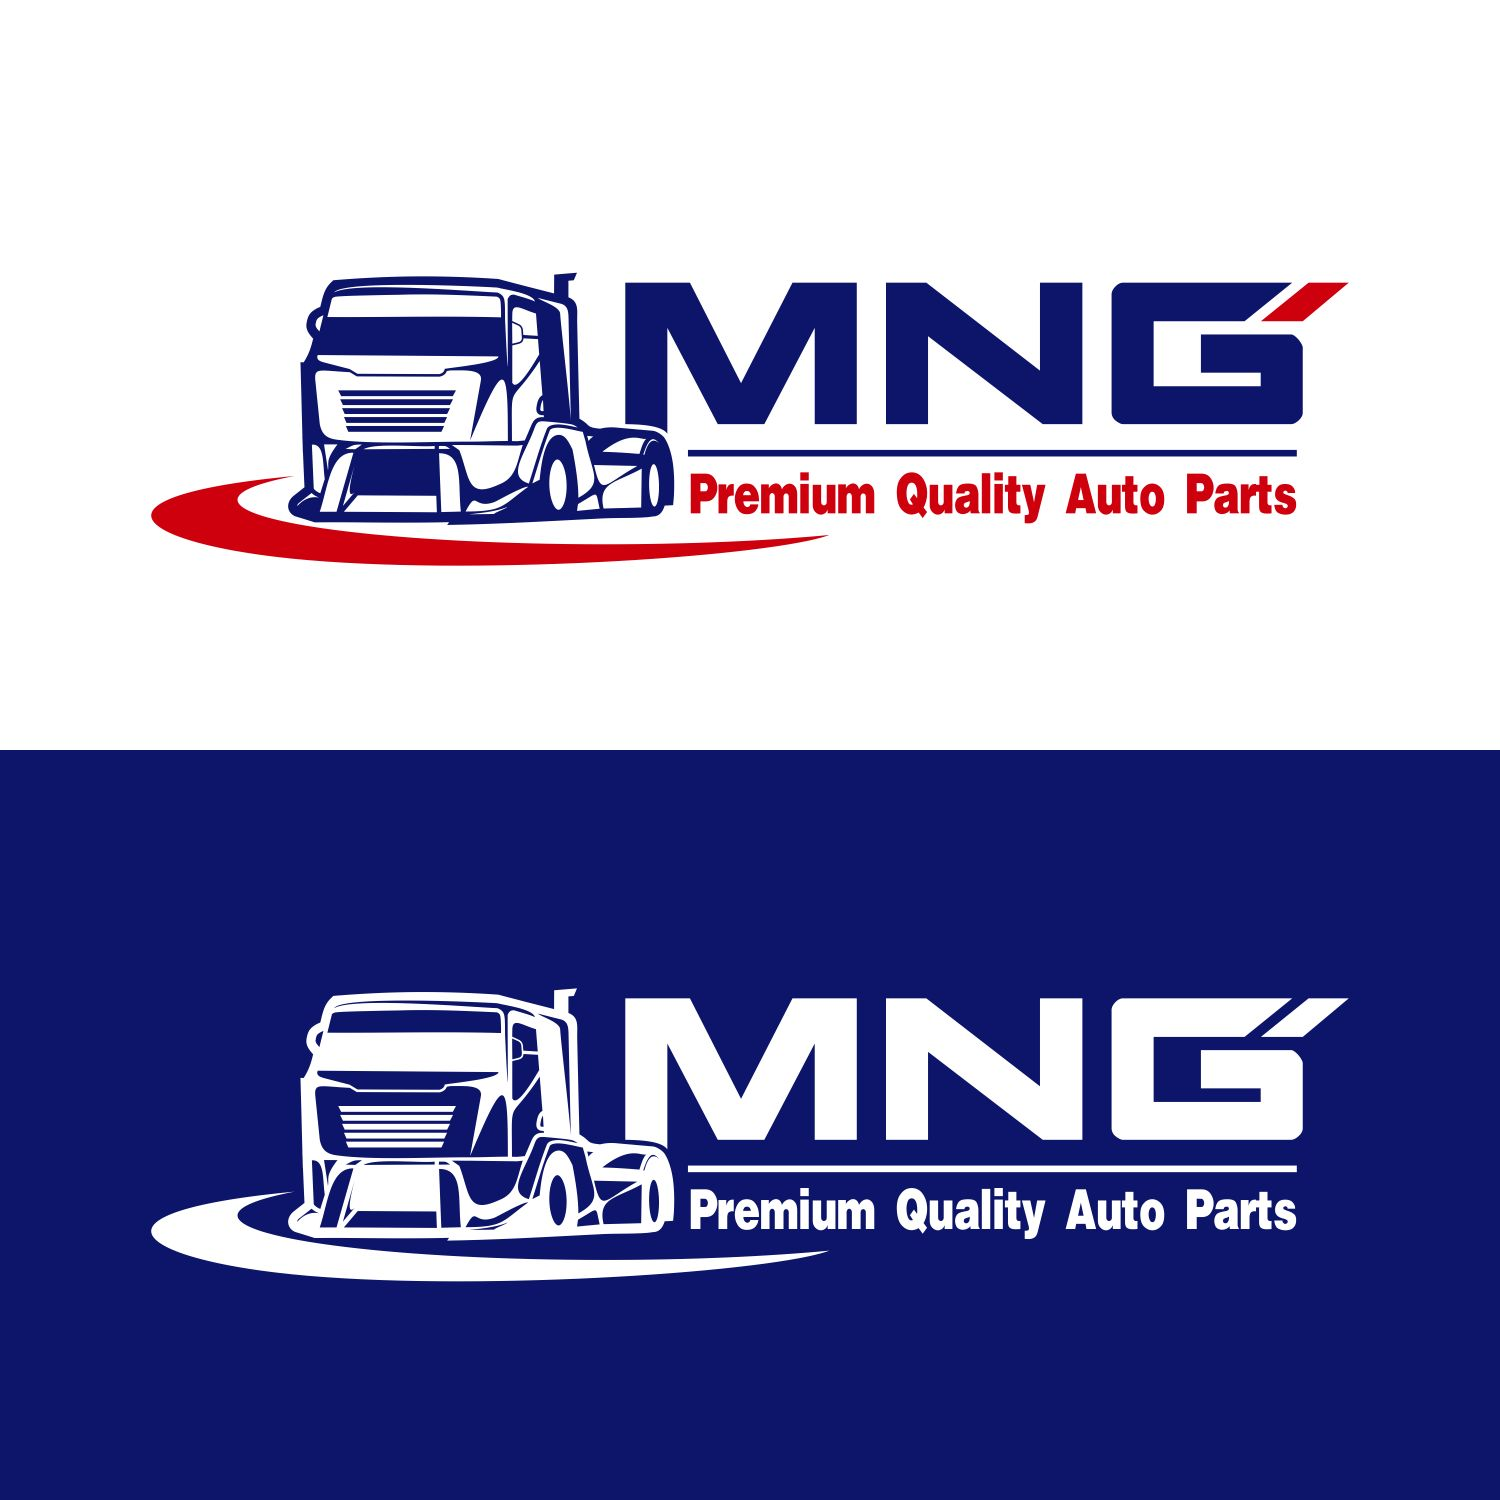 Quality Auto Parts >> Truck Trailer Spare Parts Trading Company Needs A Logo